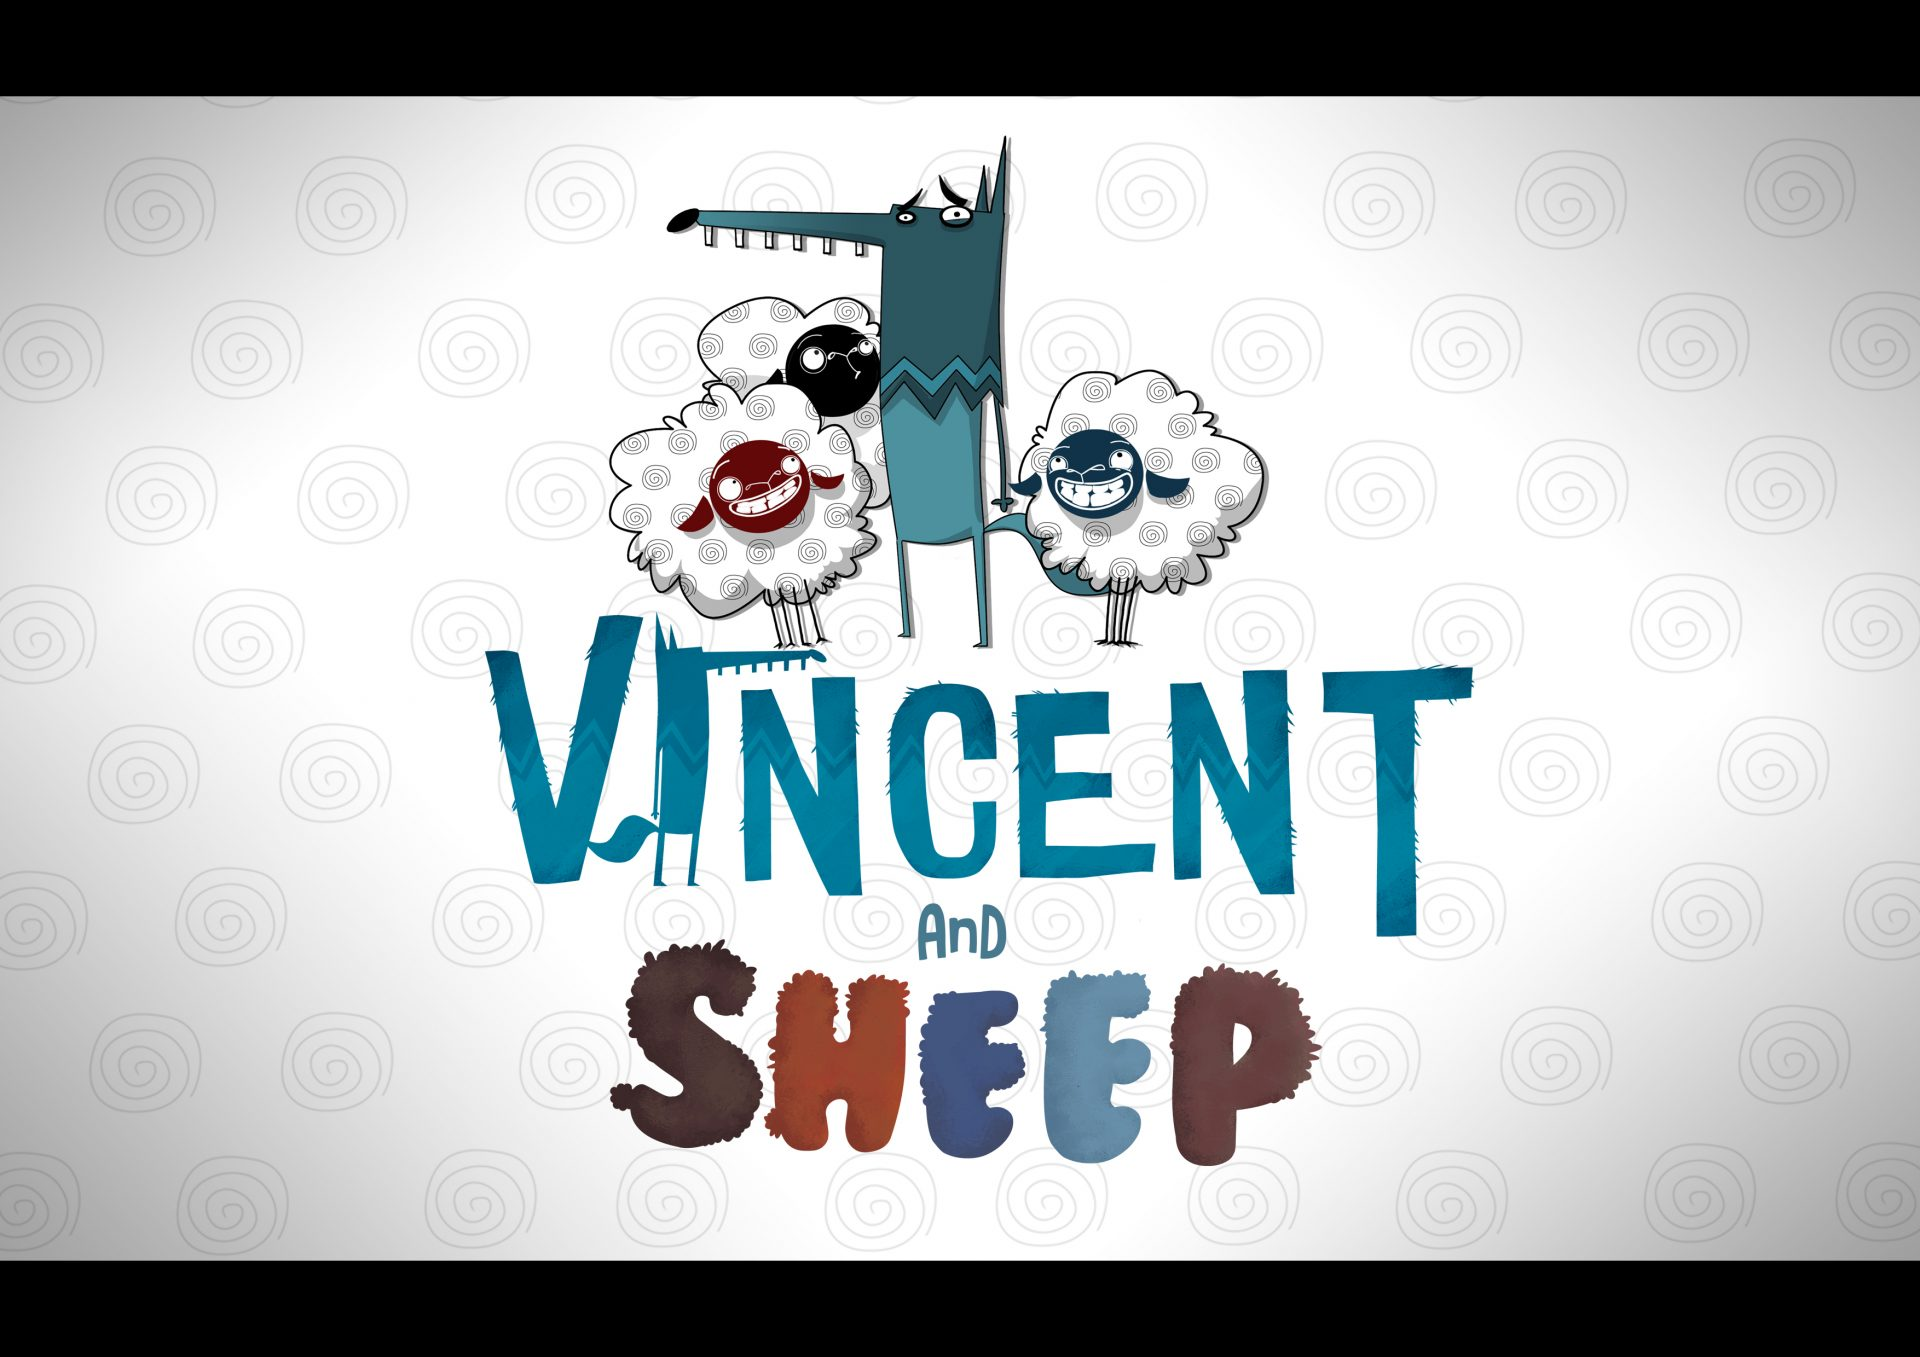 Vincent and Sheep